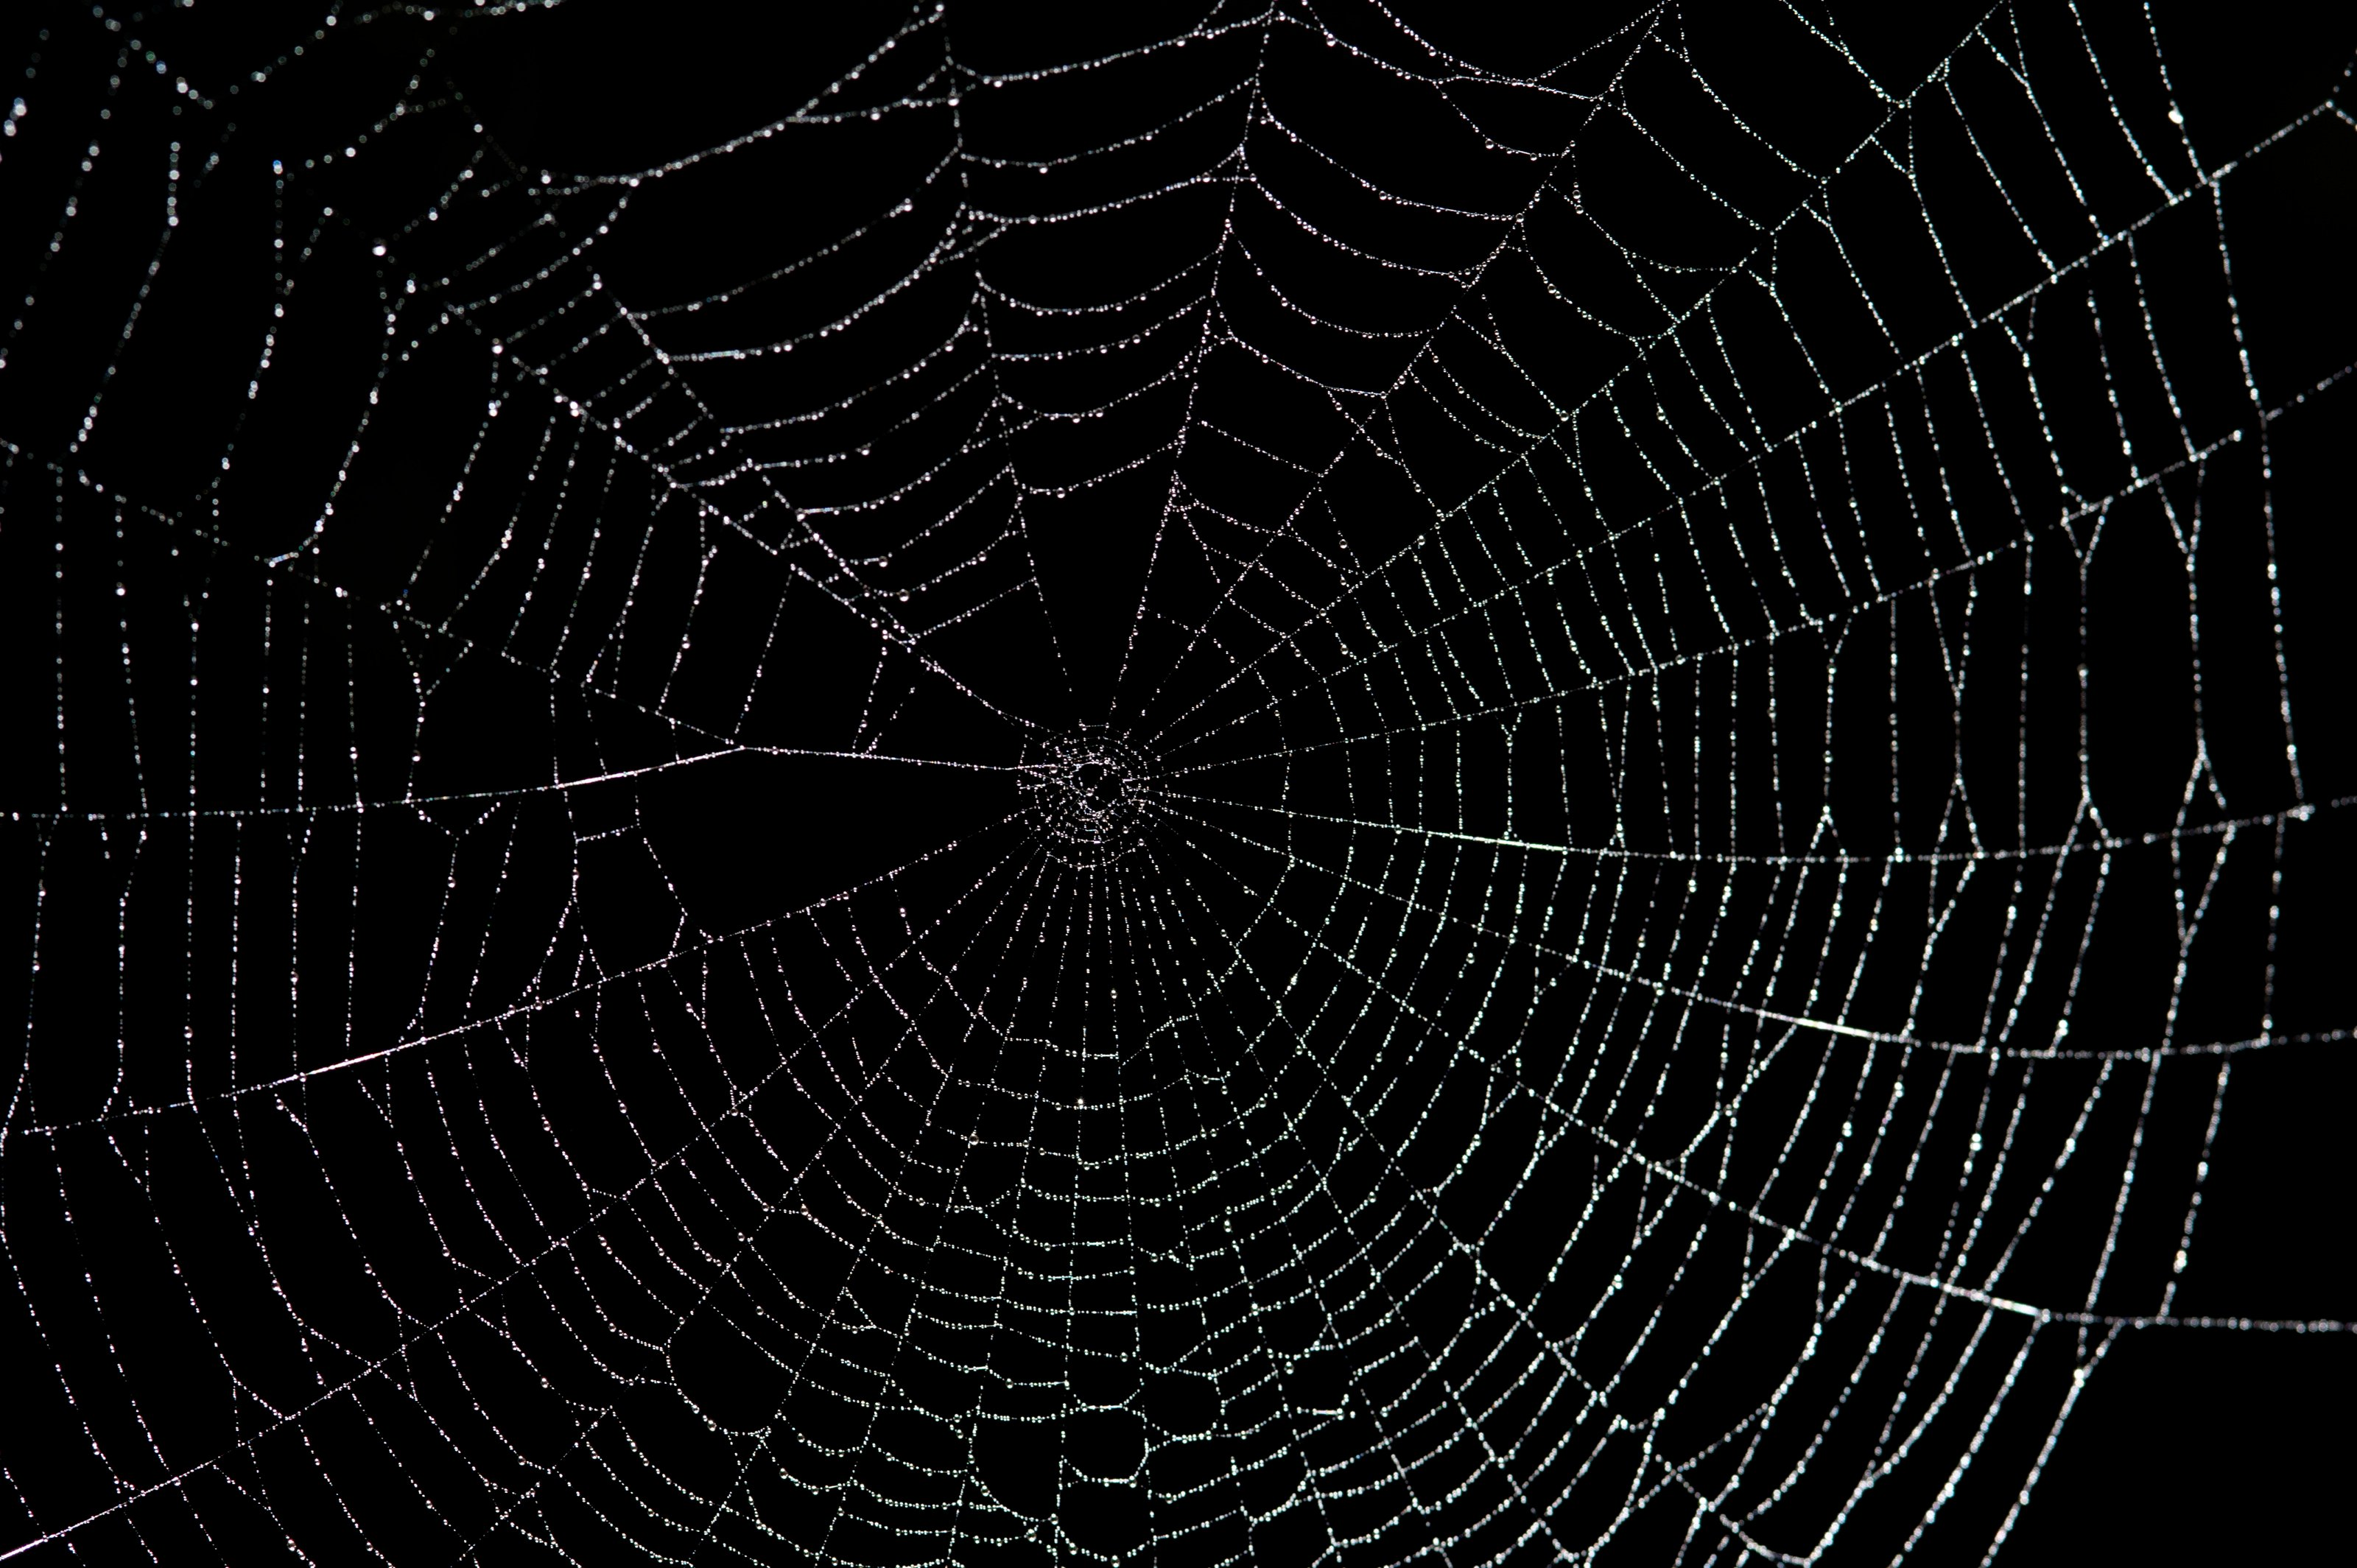 0637 001 JPG Spiders Web Wallpapers and Spiders Web Backgrounds 1 of 1 3200x2129